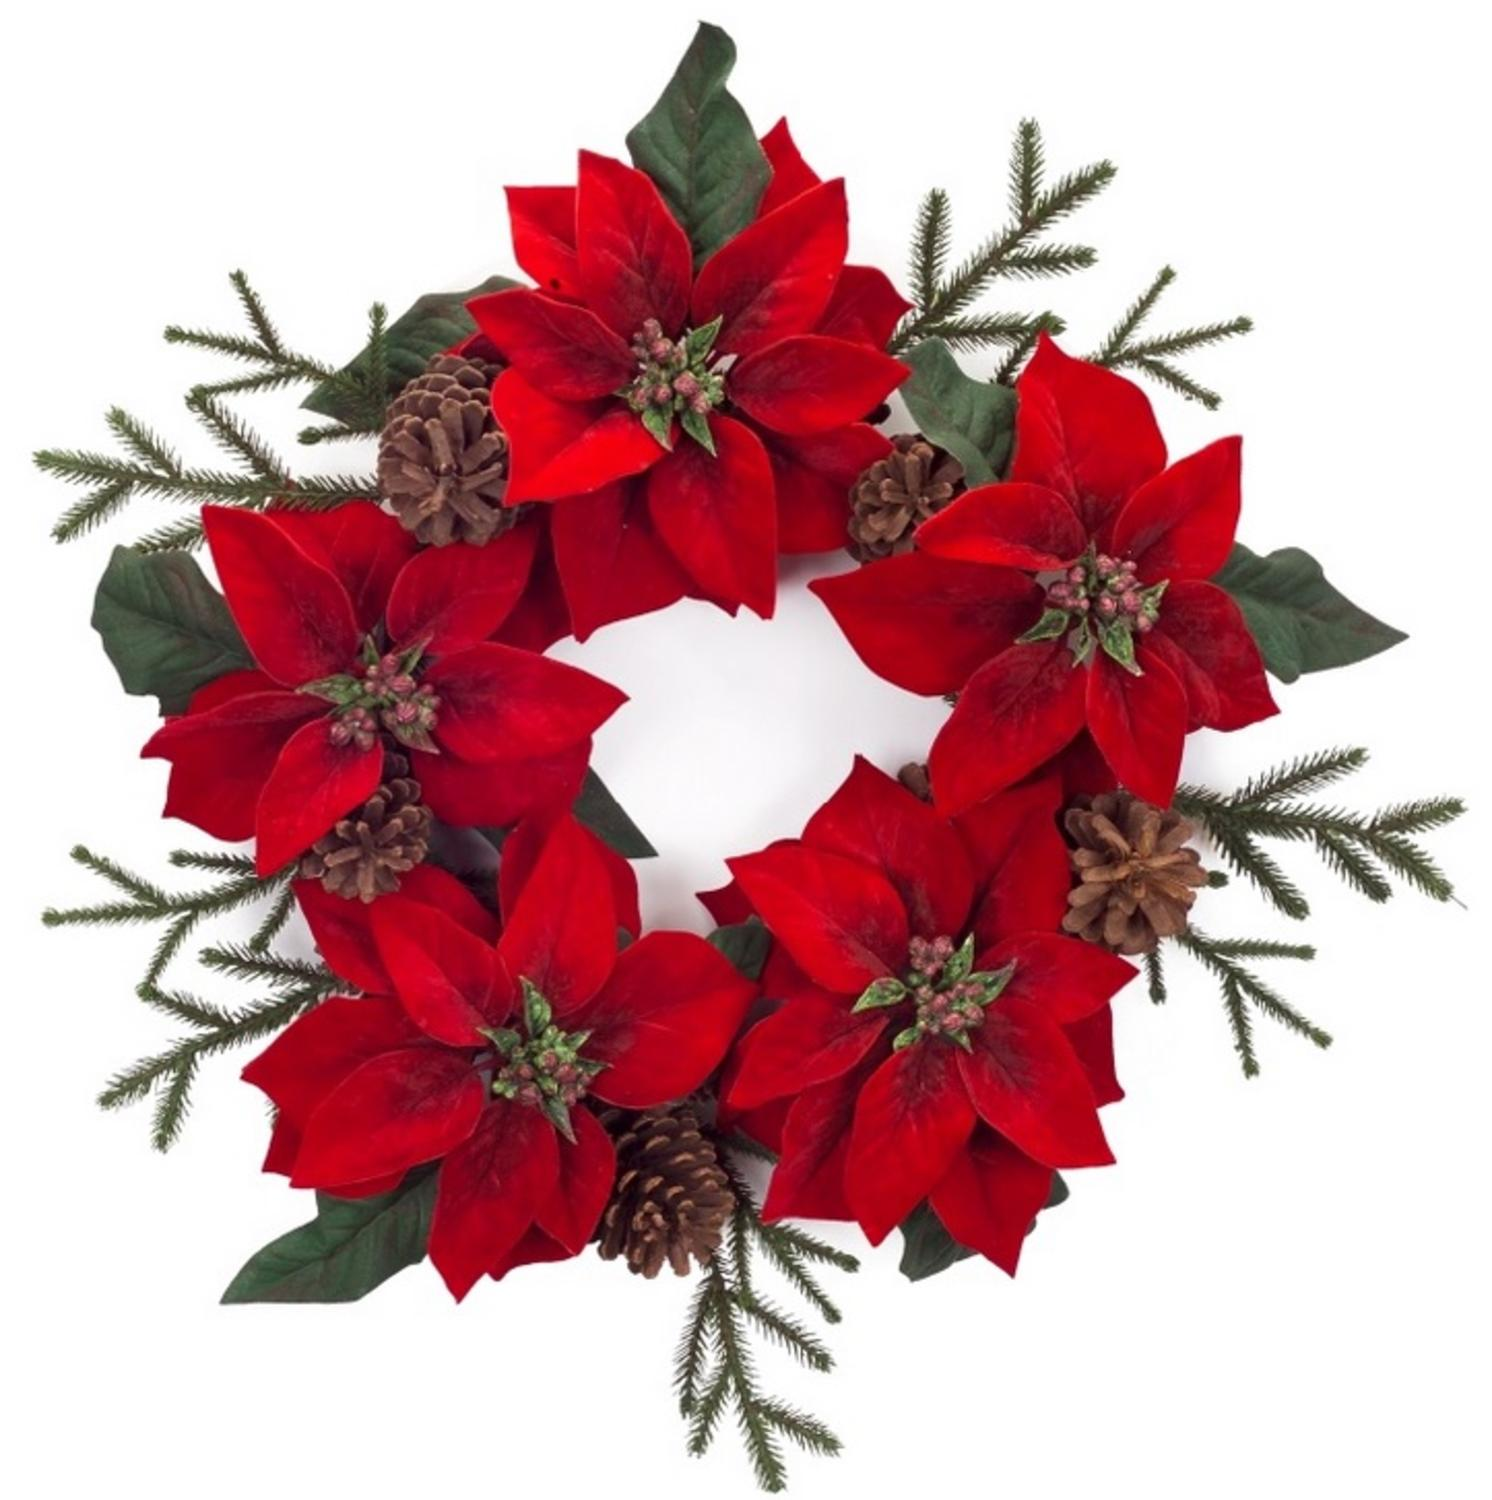 Pack of 2 Decorative Red Velvet Poinsettia Flower and Pine Cone Artificial Christmas Wreaths 30""